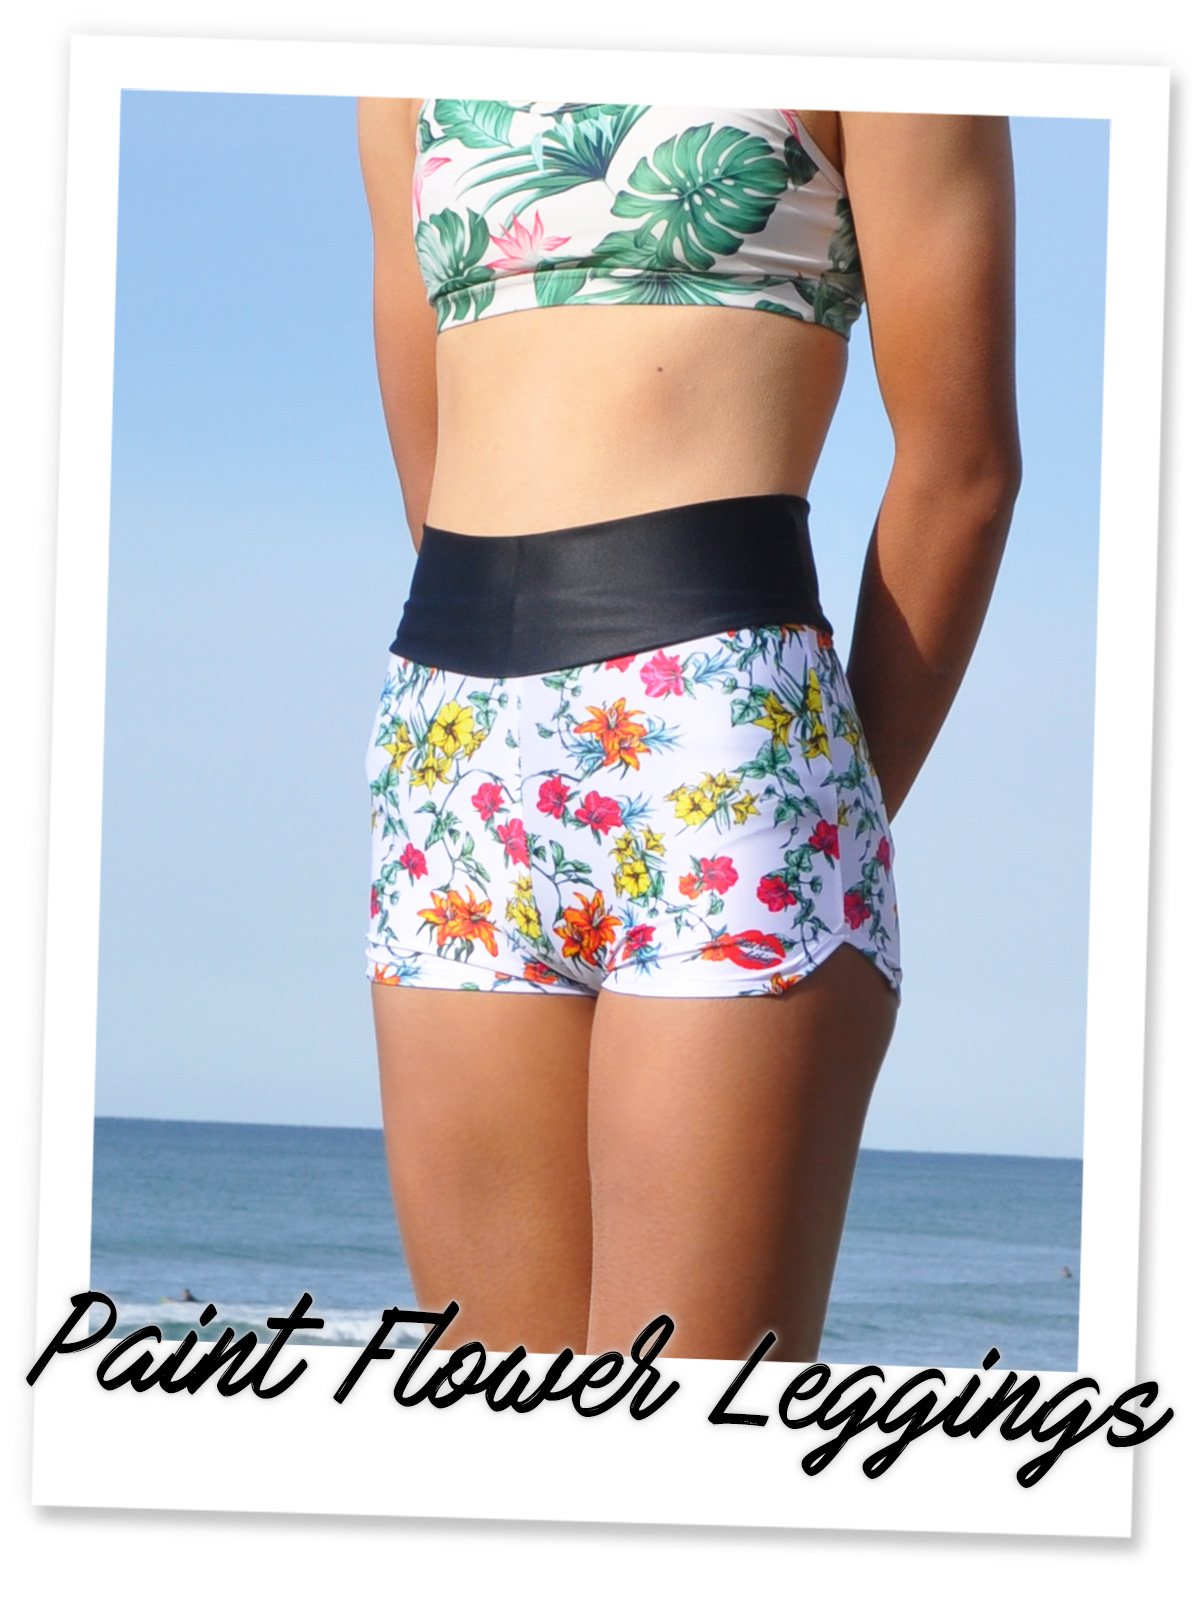 Paint Flower Leggings(PFL)